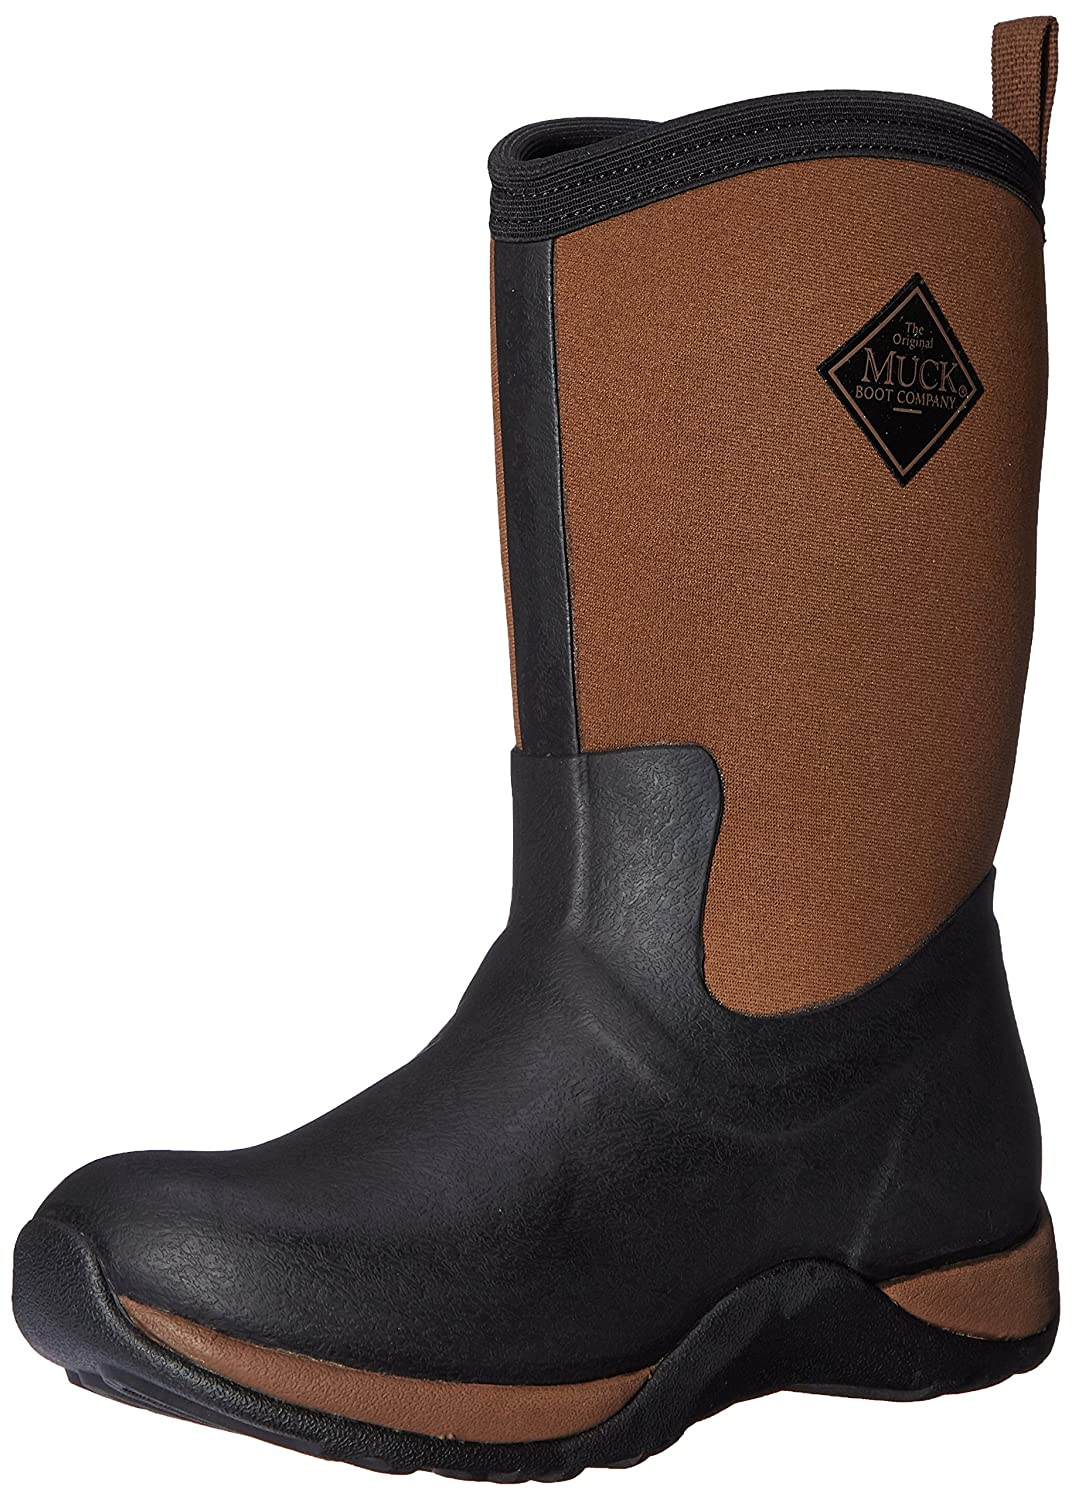 Muck Boot Women's Arctic Weekend Mid Snow B00TT34PZA 10 B(M) US|Black/Tan